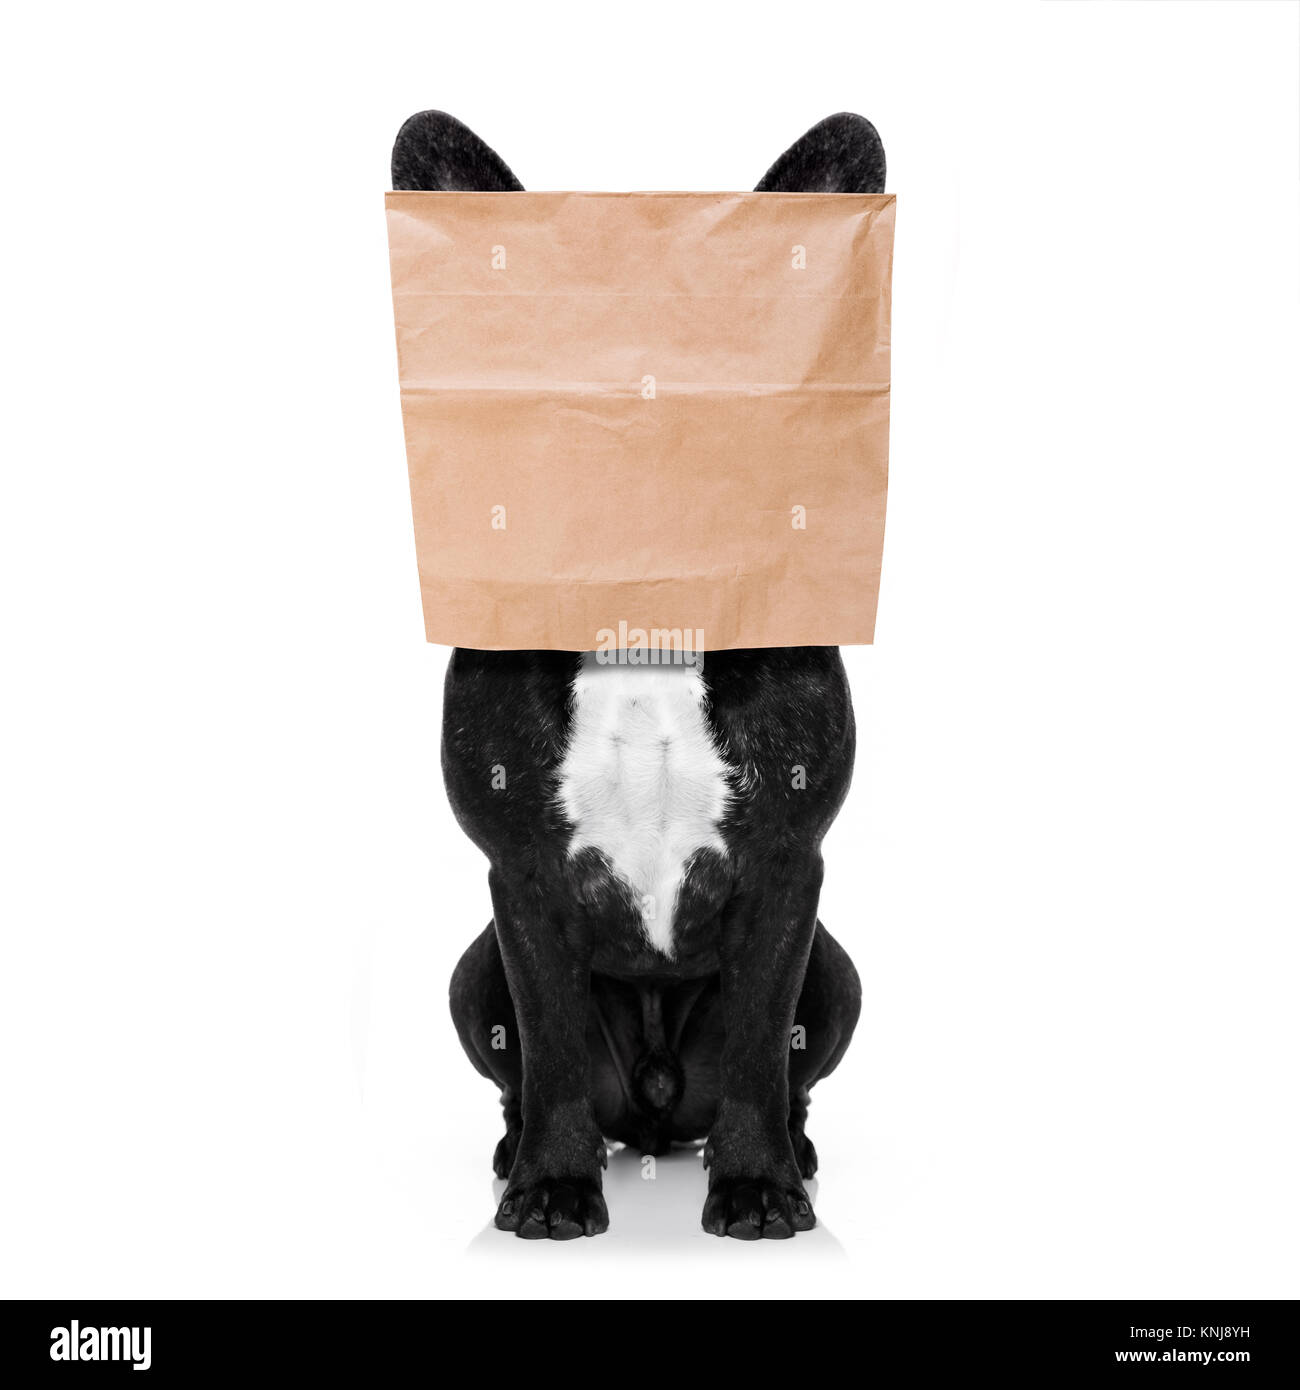 french bulldog dog  , hiding behind a paper bag on his head, isolated on white background - Stock Image